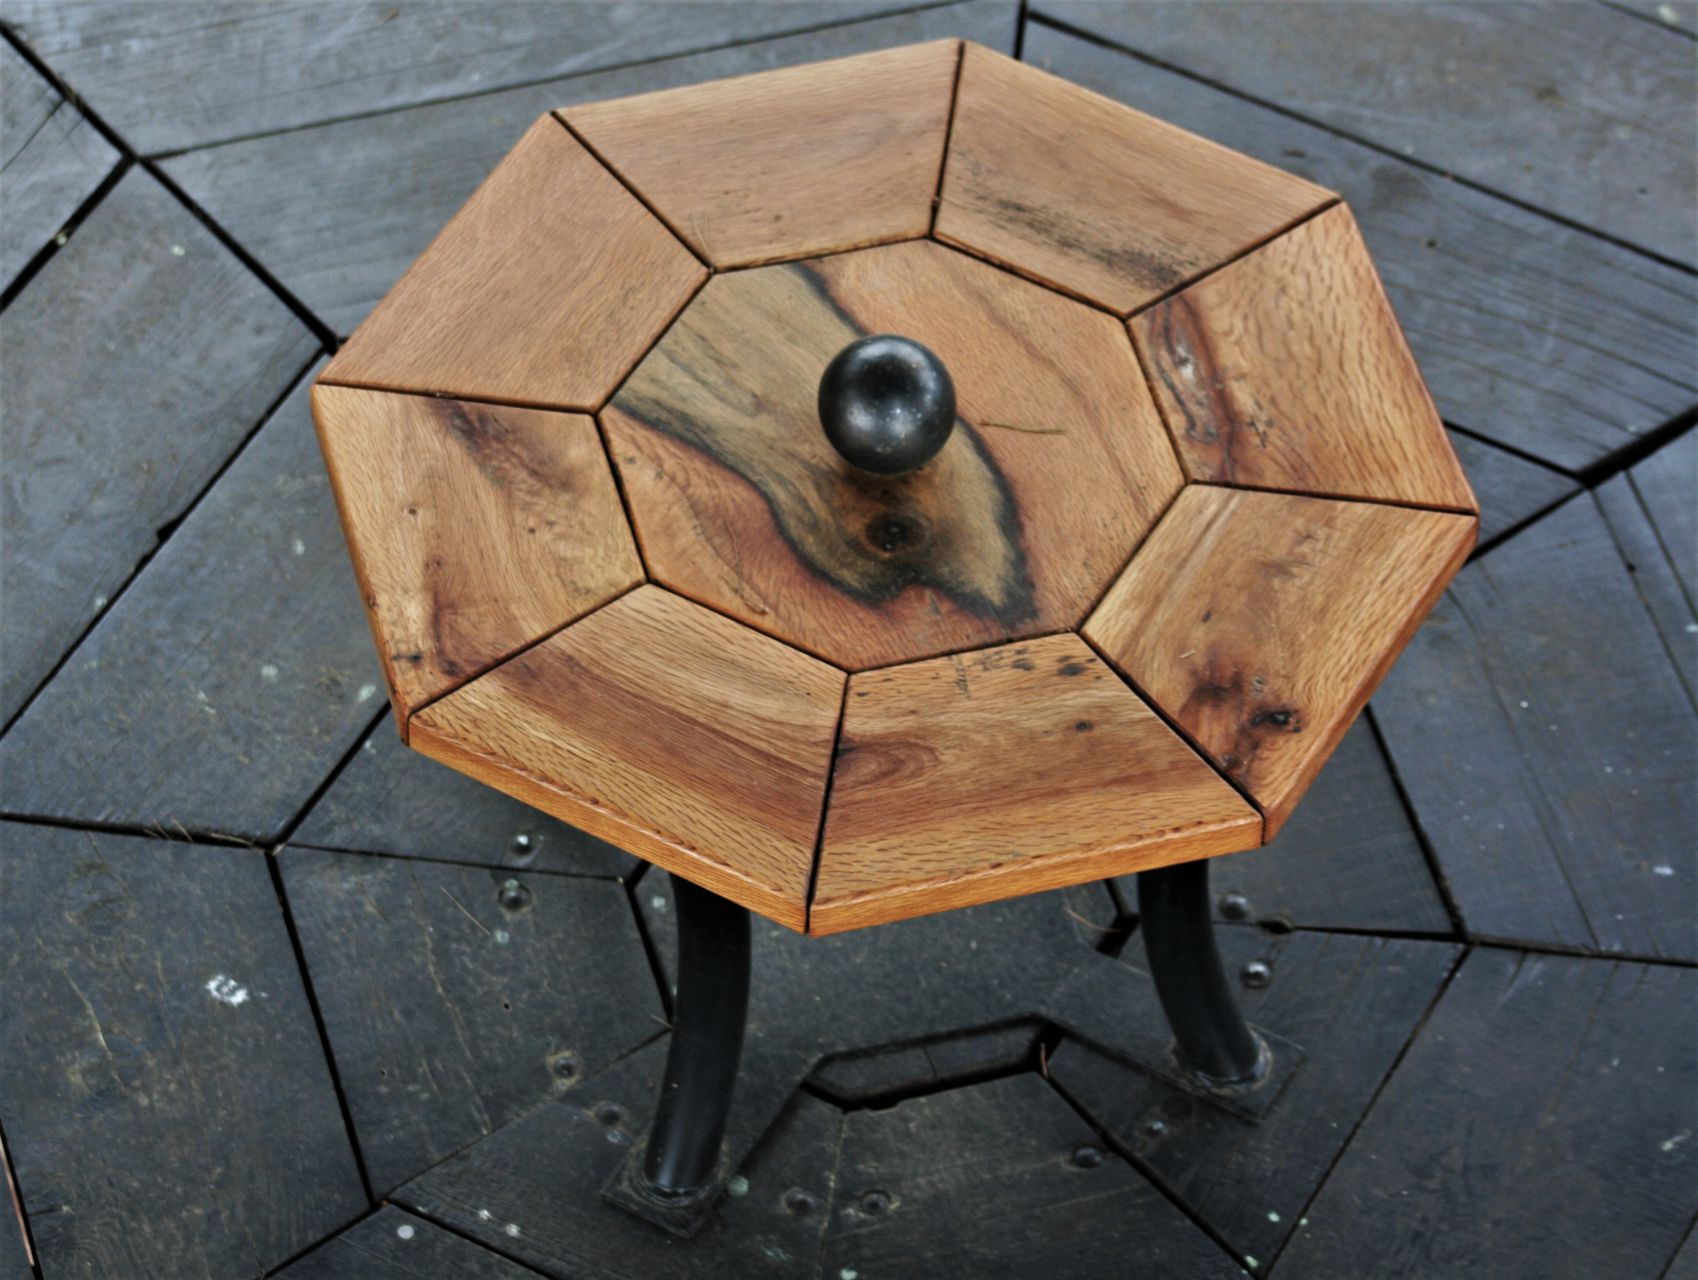 holm oak wood unique handmade stool sanisio design Brijuni national park Istria